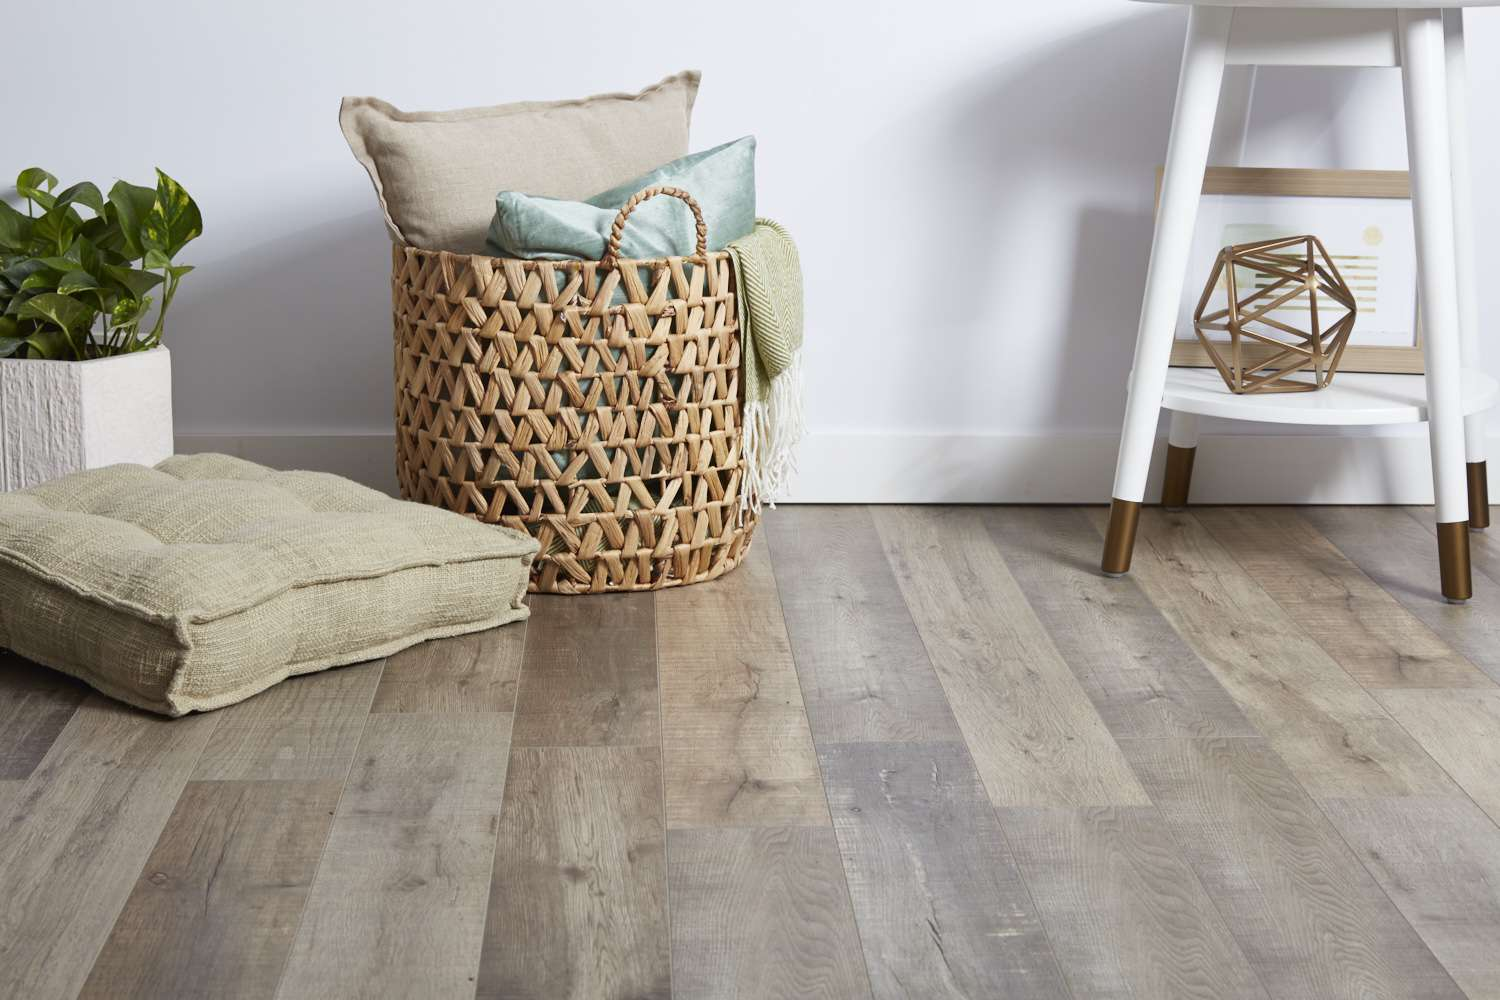 Laminate flooring with cushion, houseplant, woven basket with pillows and white stool